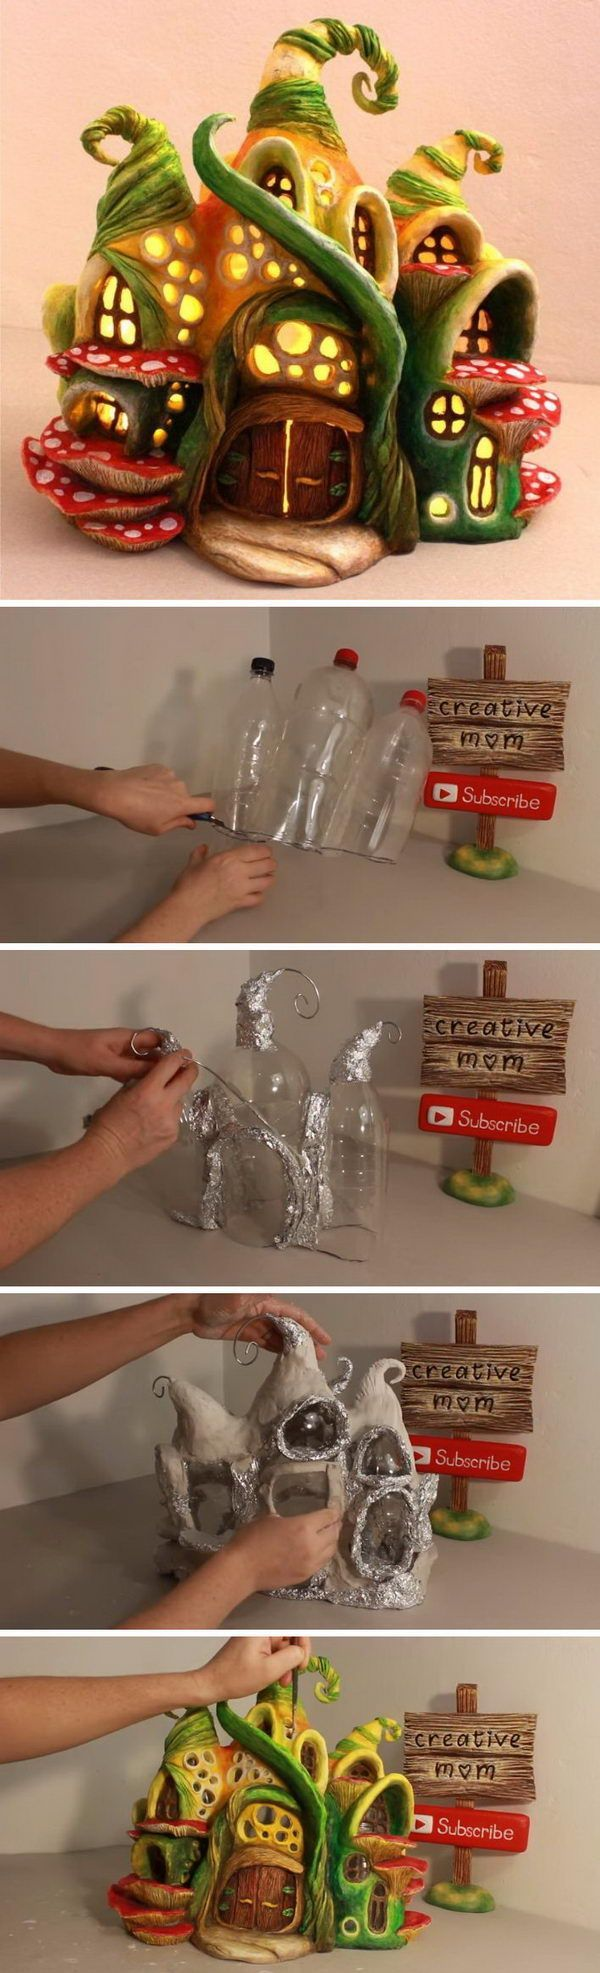 DIY Enchanted Fairy House Lamp Using Coke Plastic Bottles ...